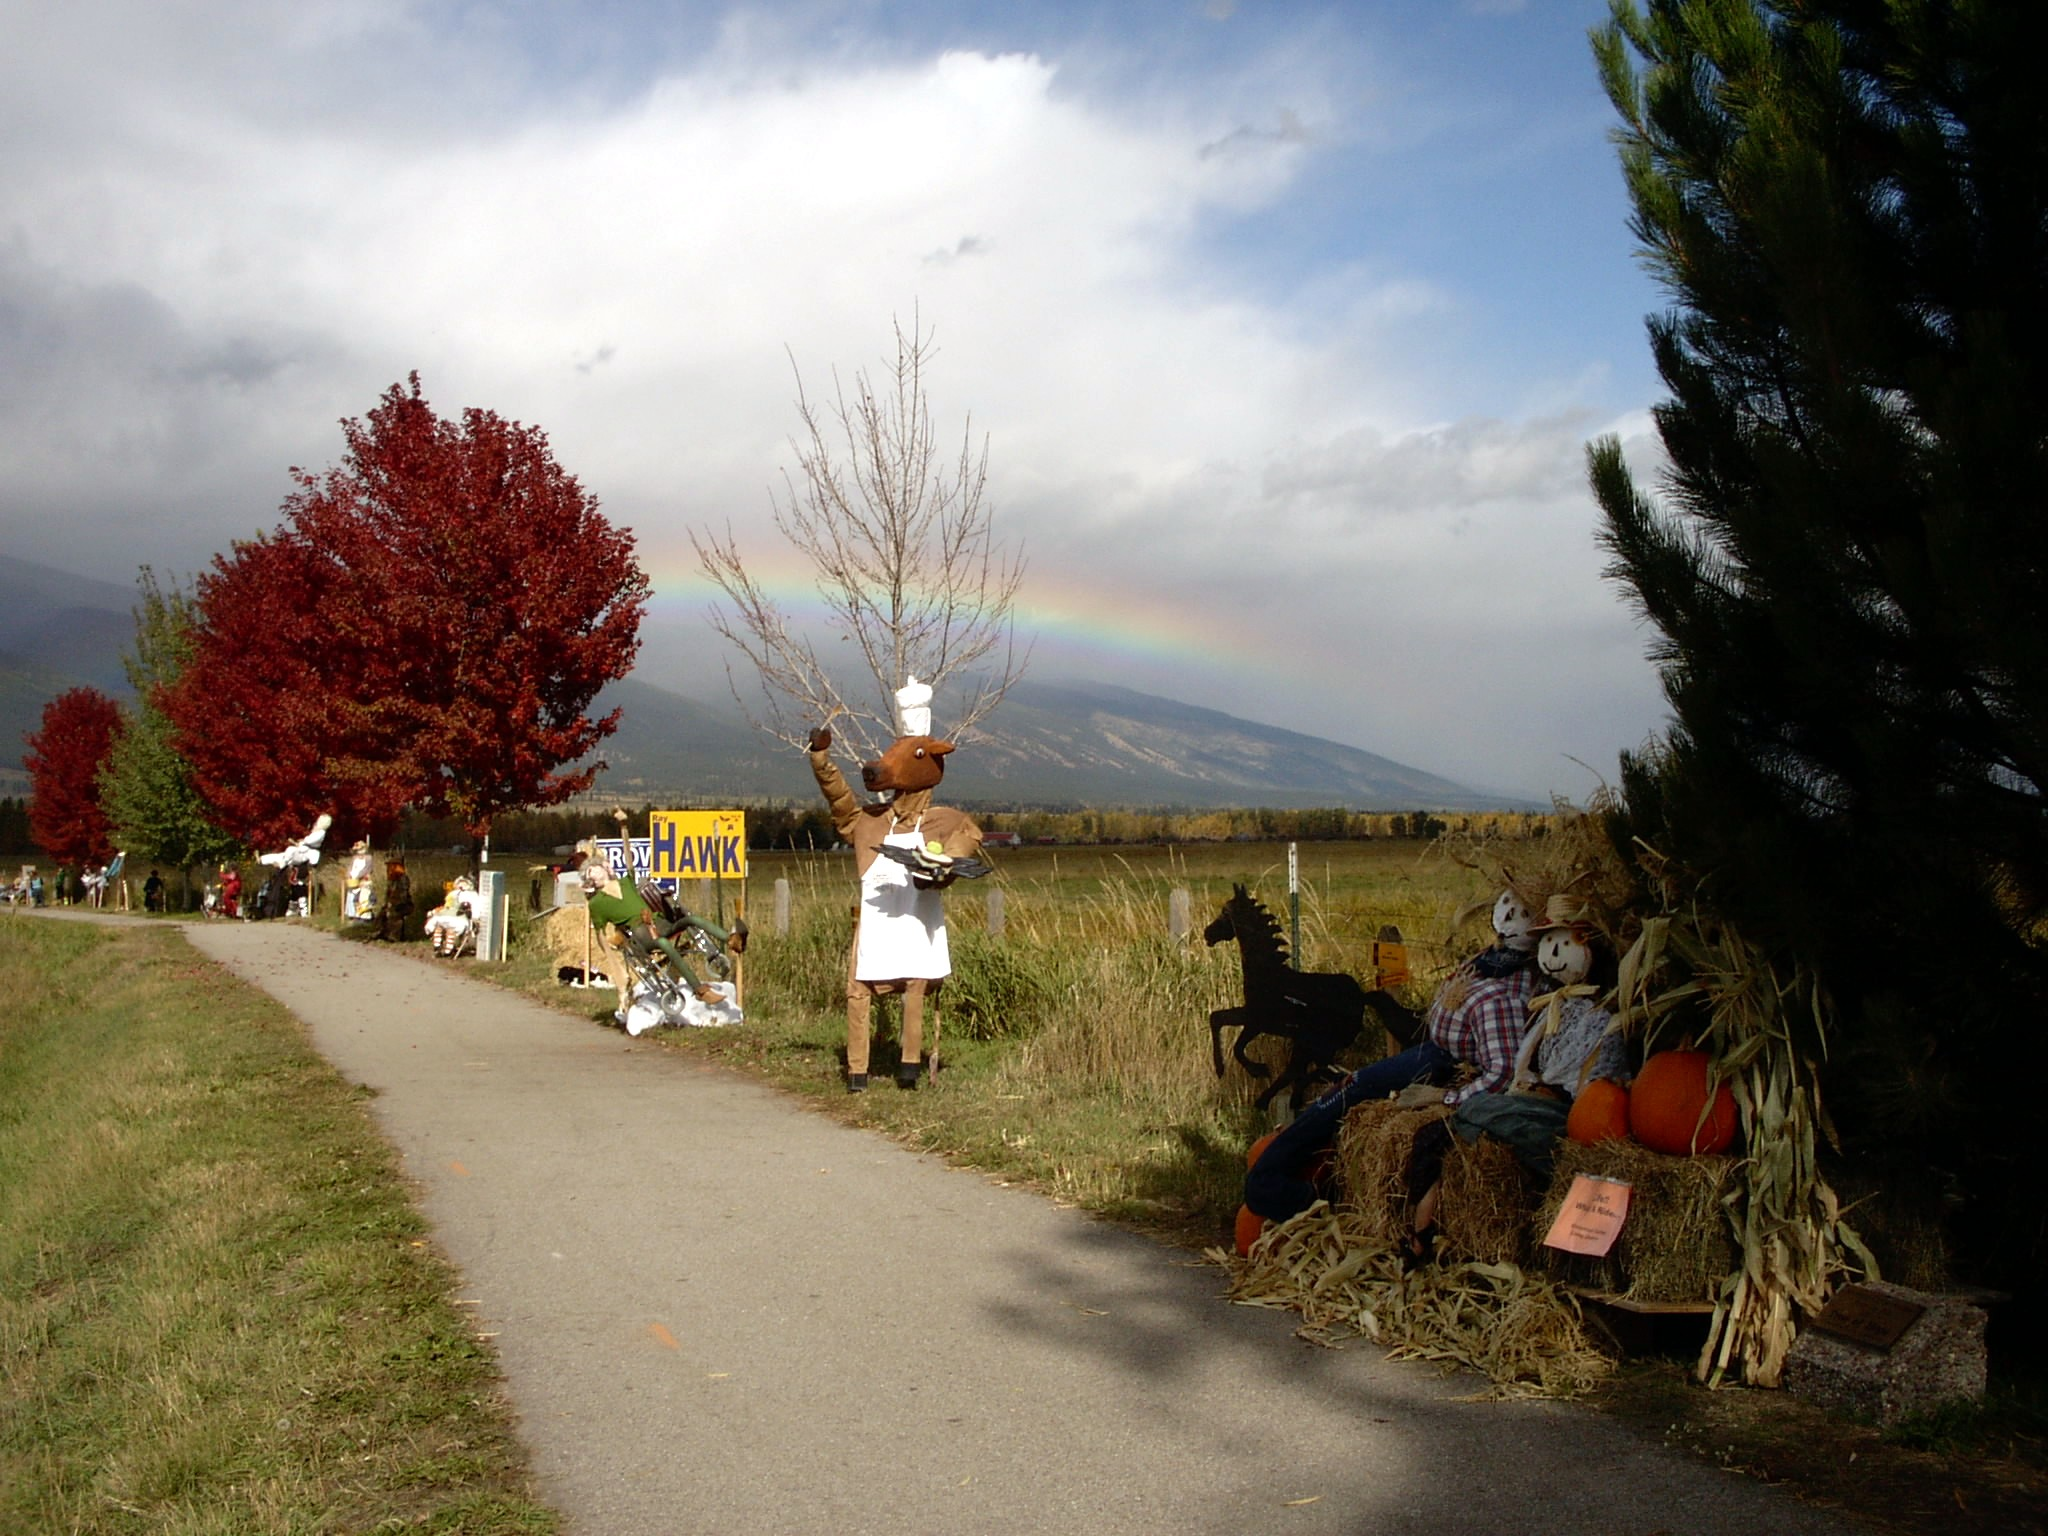 Scarecrows in a line for the festival in Stevensville, Montana